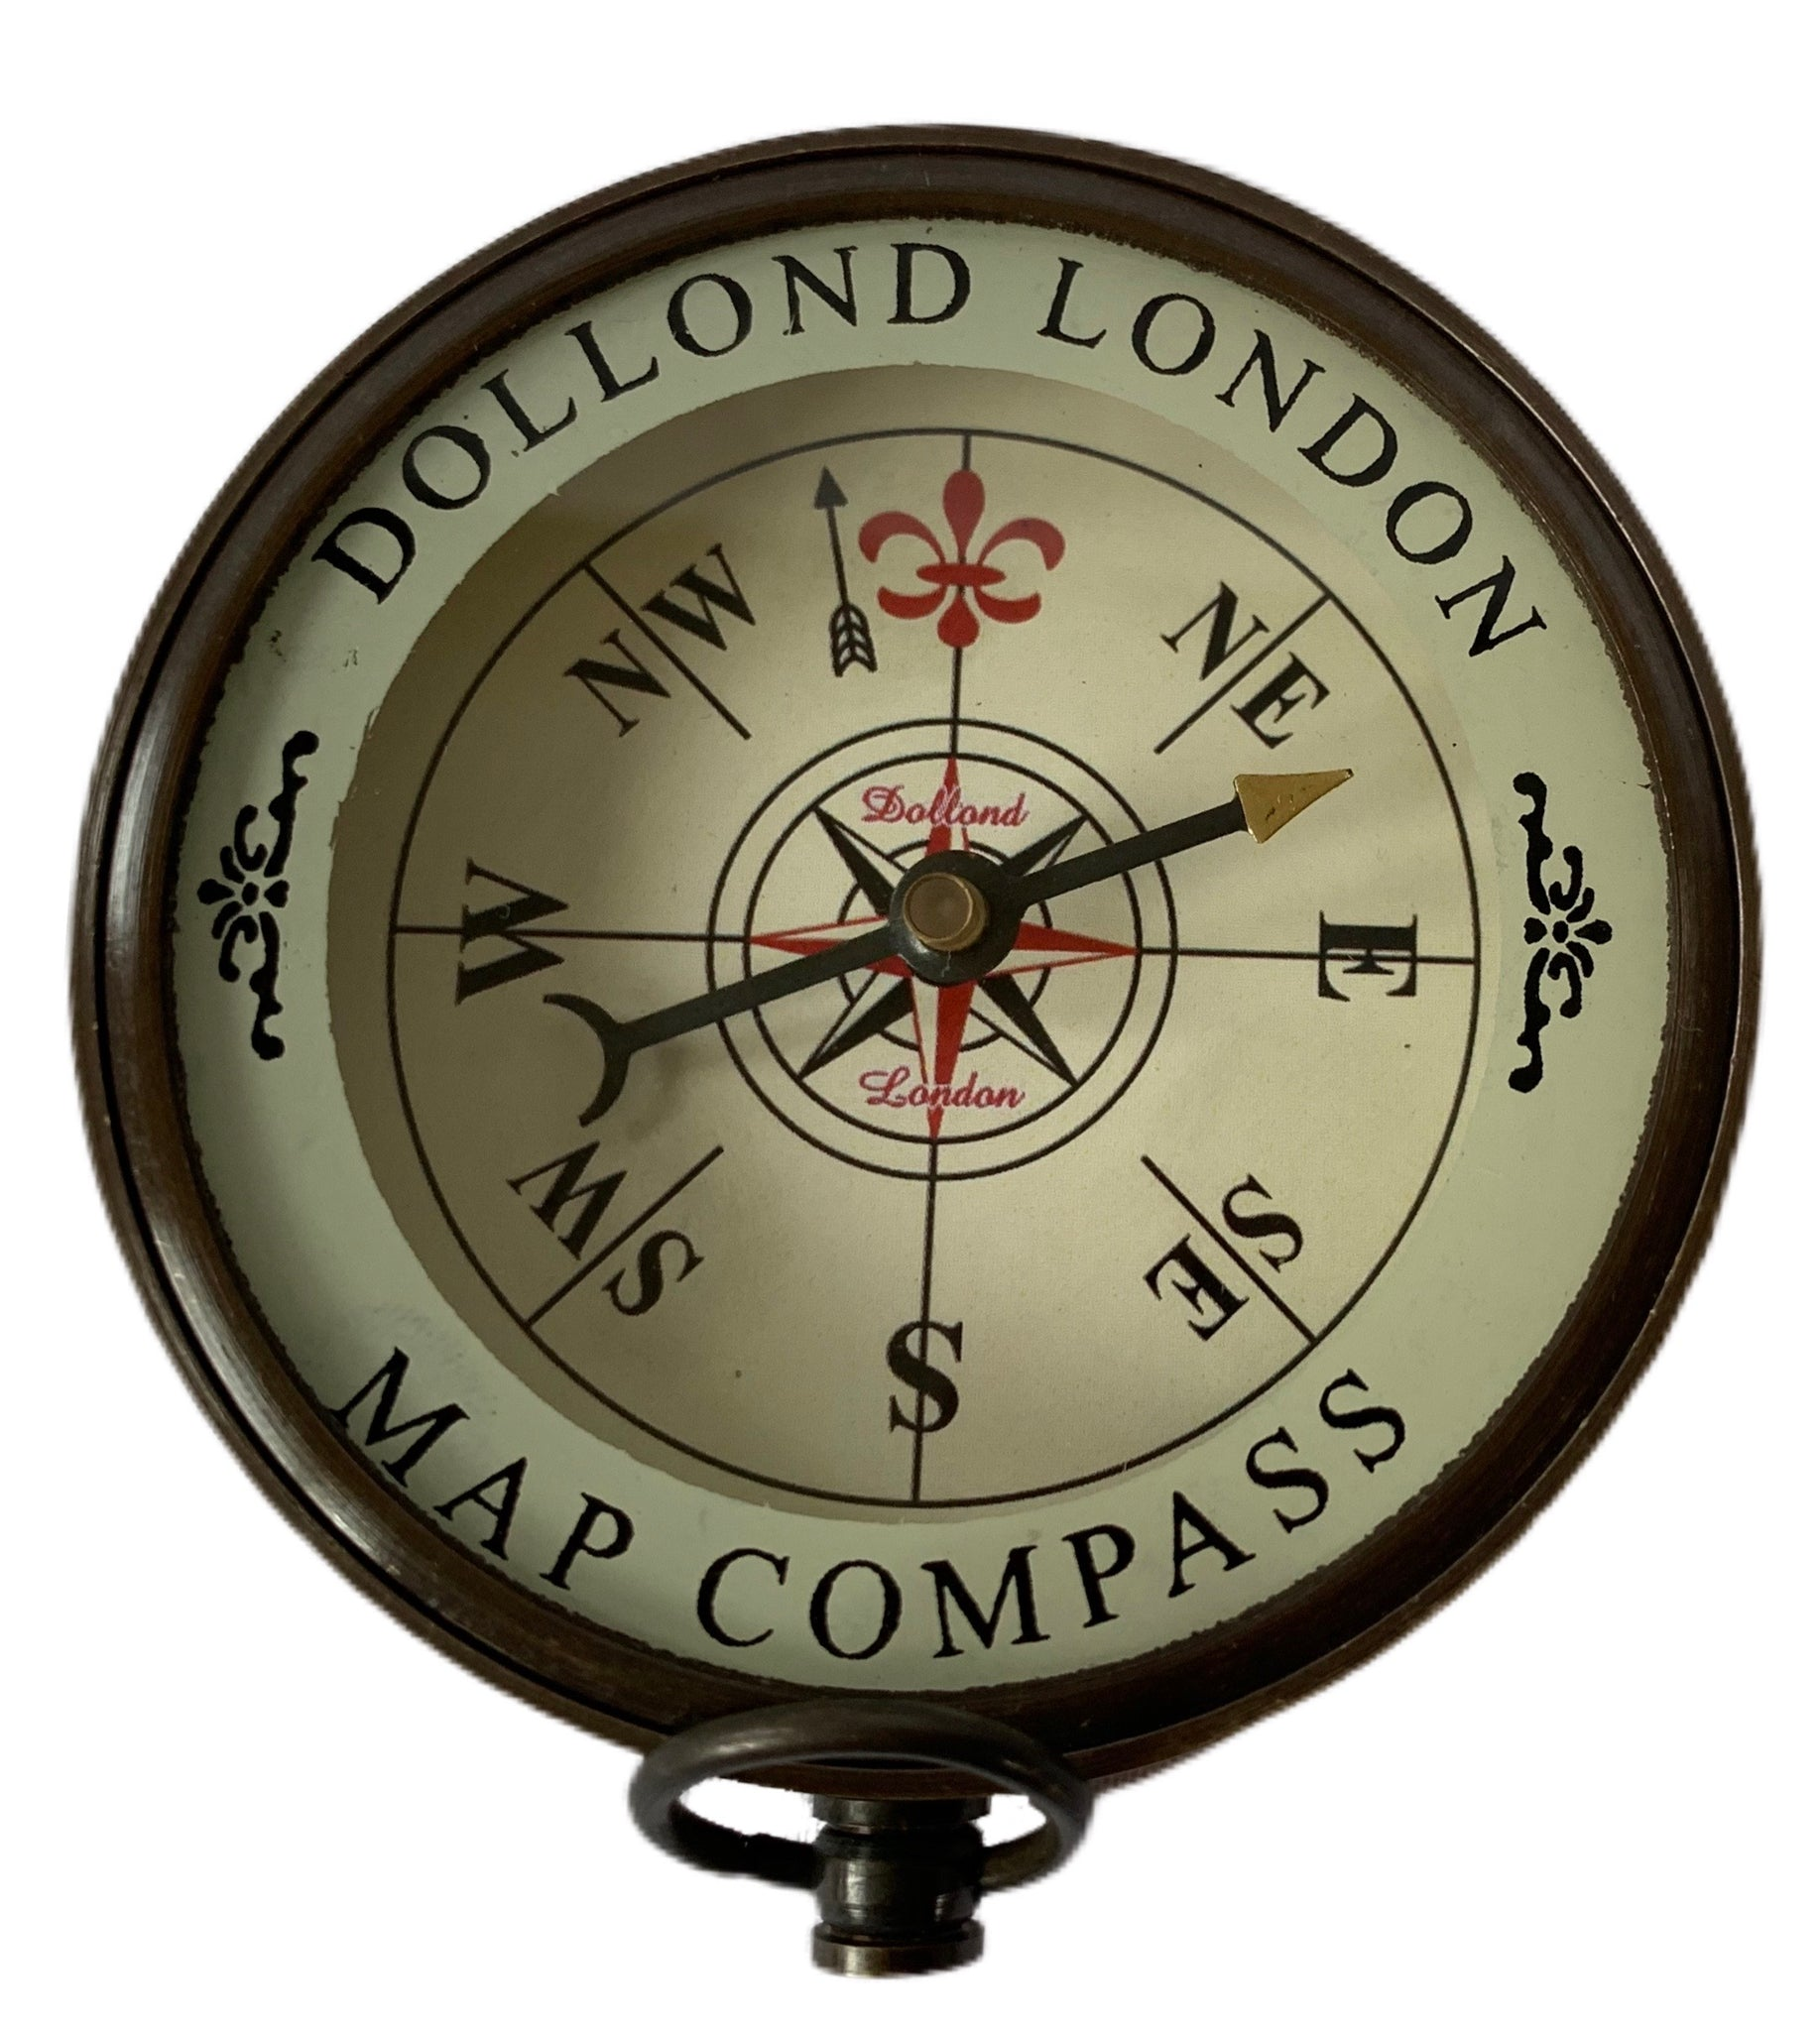 Dollond London Map compass